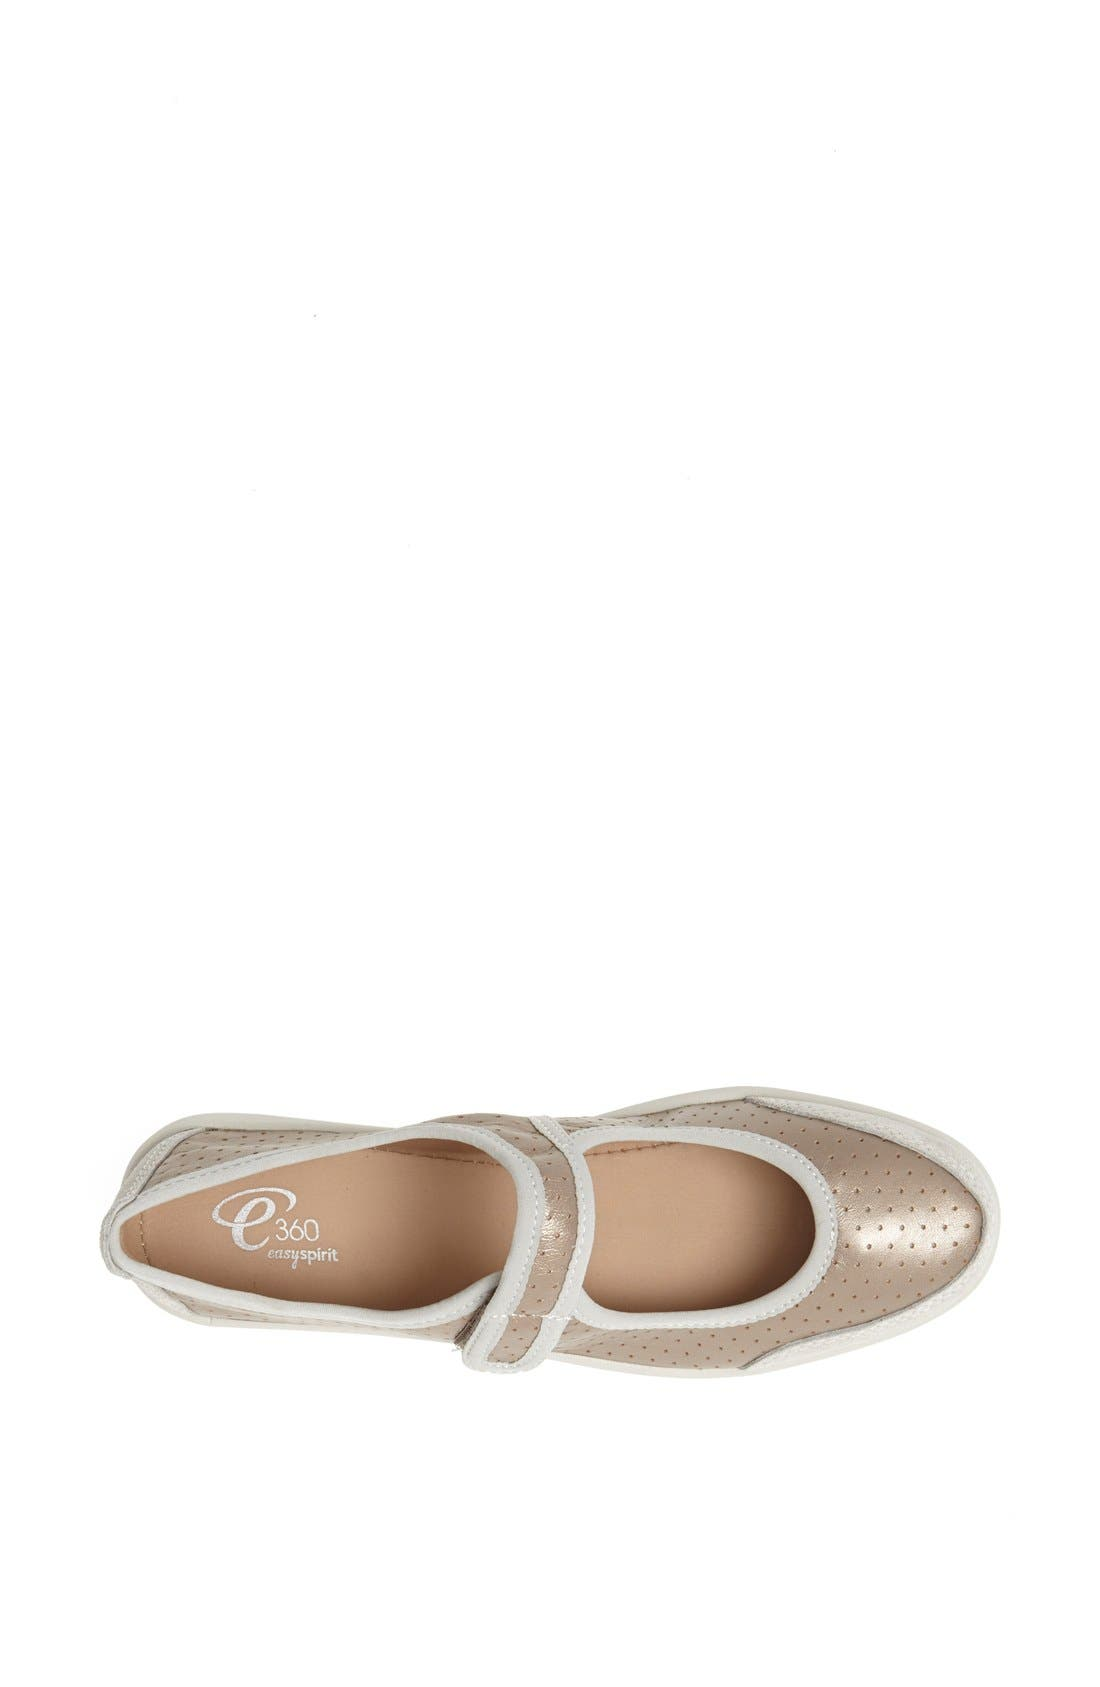 Alternate Image 3  - Easy Spirit 'e360 - Cesia' Mary Jane Flat (Women)